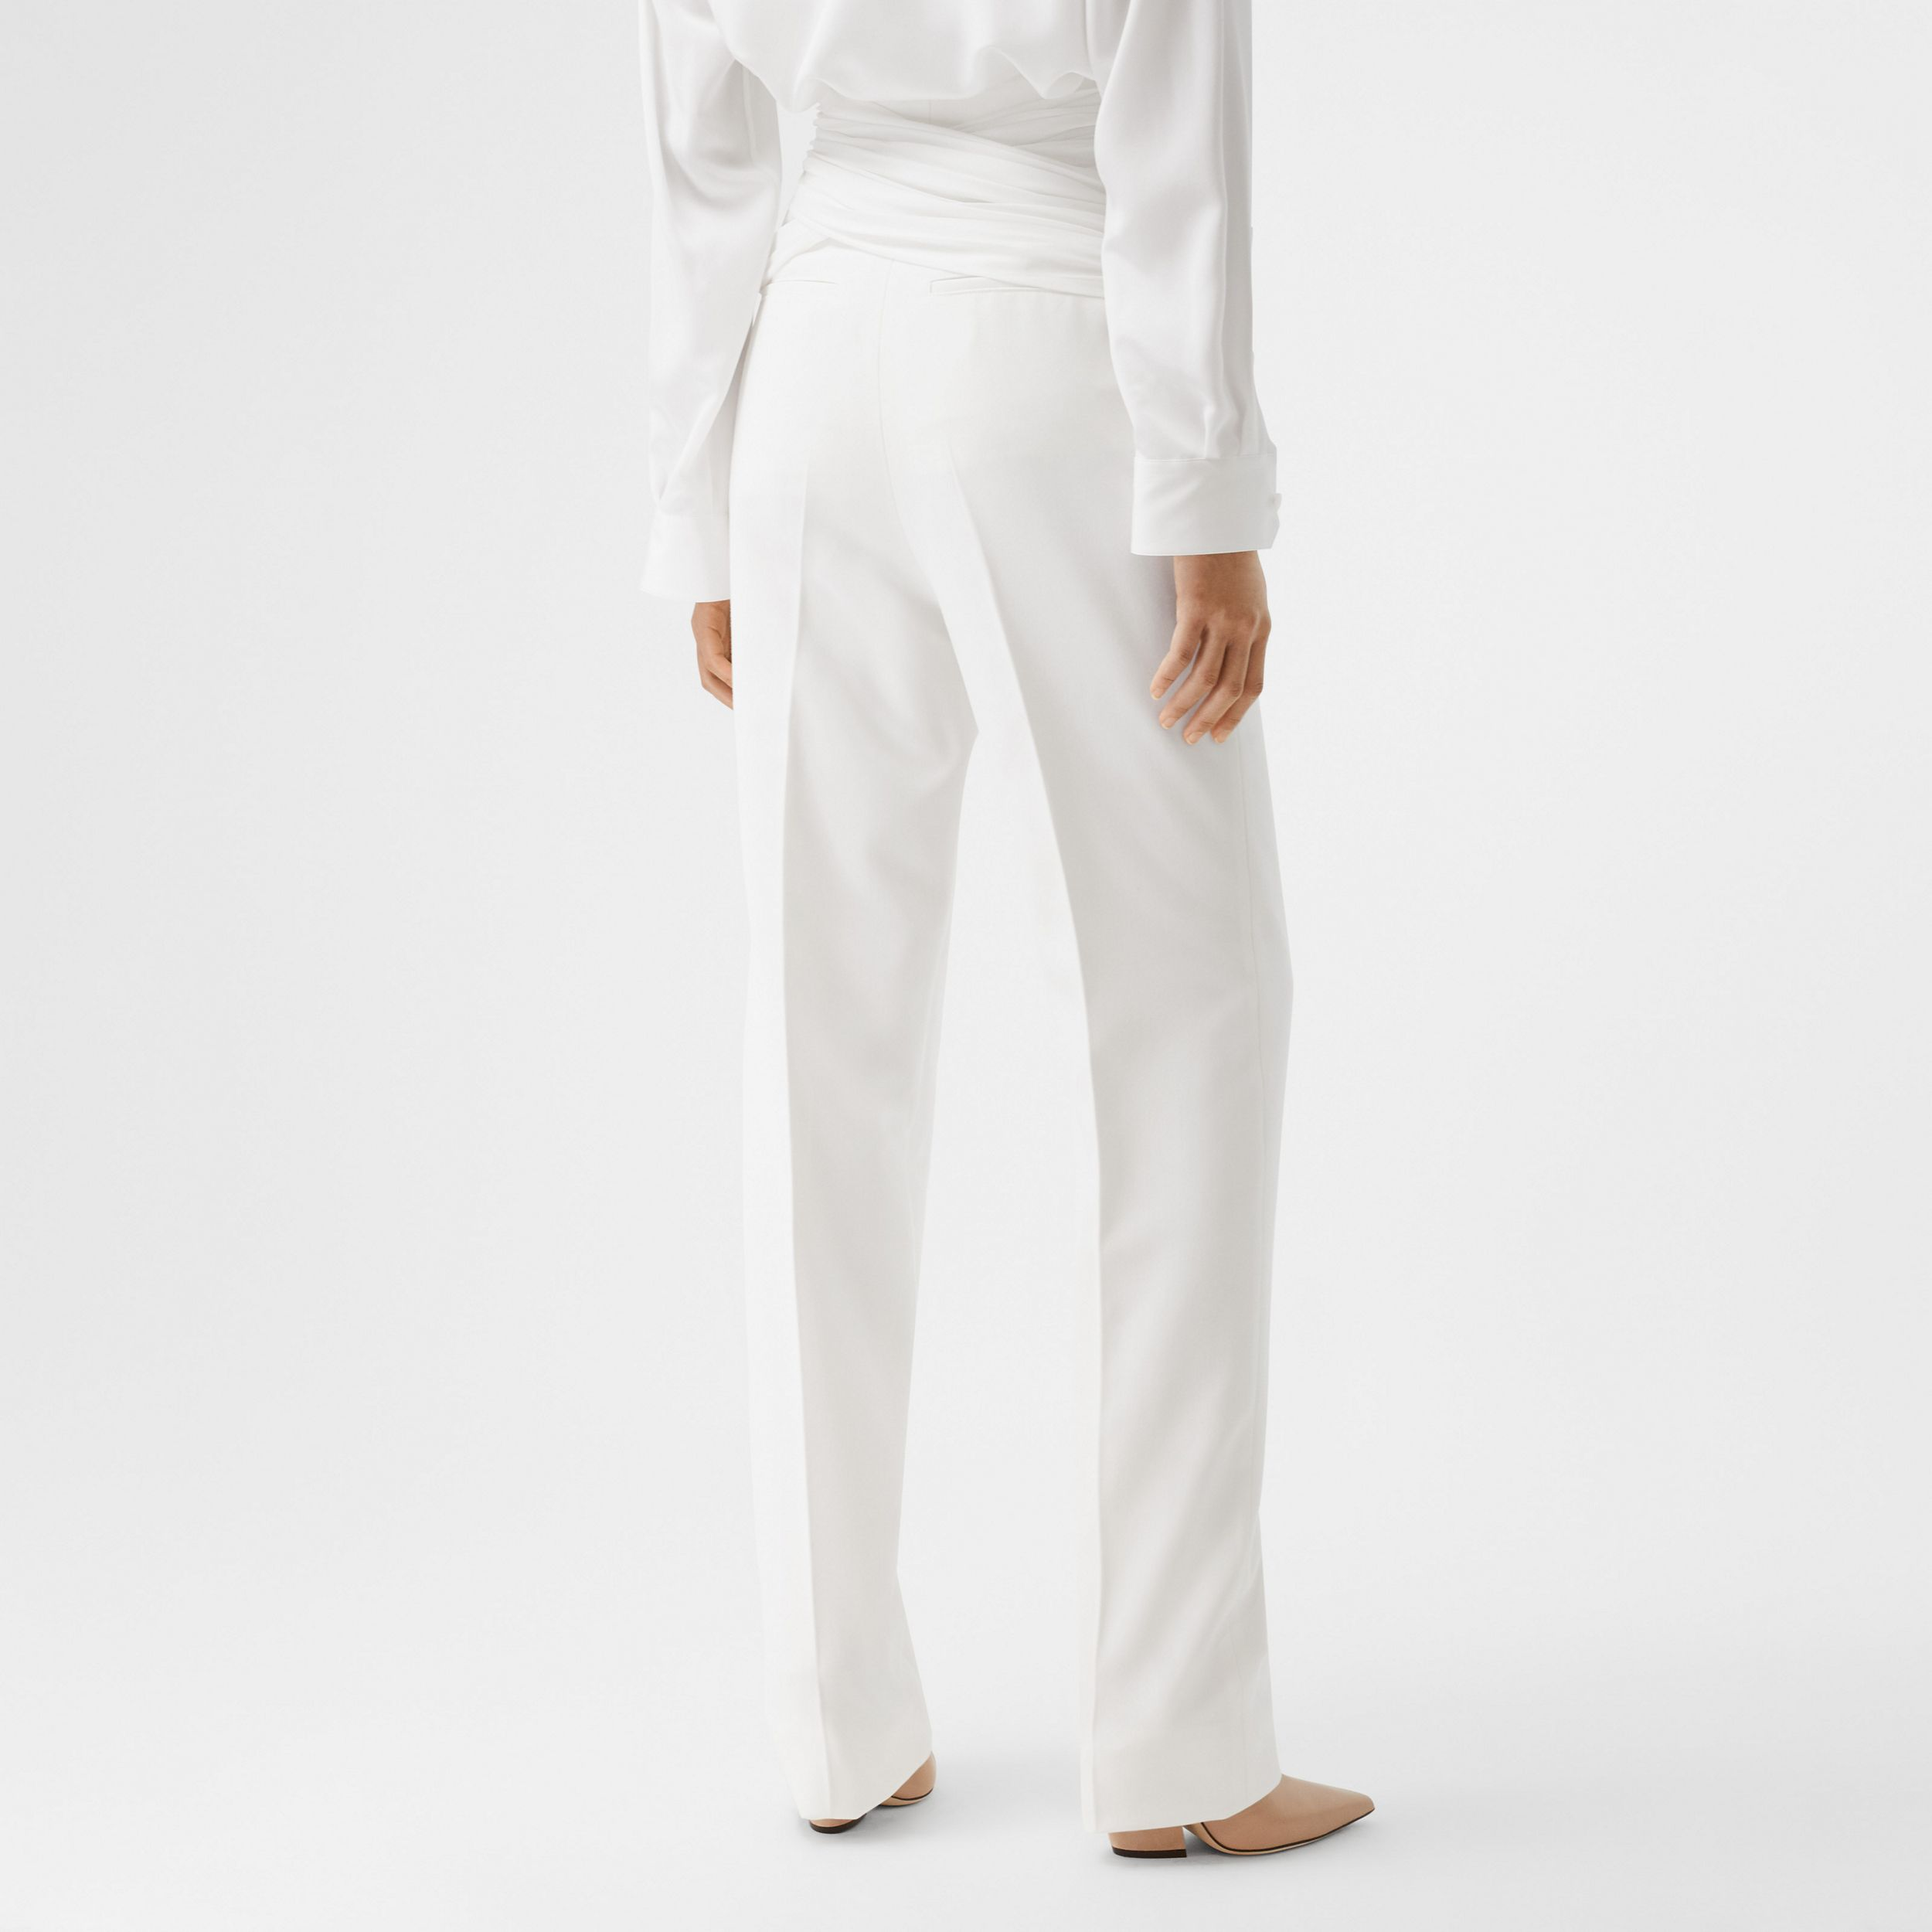 Sash Detail Technical Wool Tailored Trousers in Optic White - Women | Burberry - 3